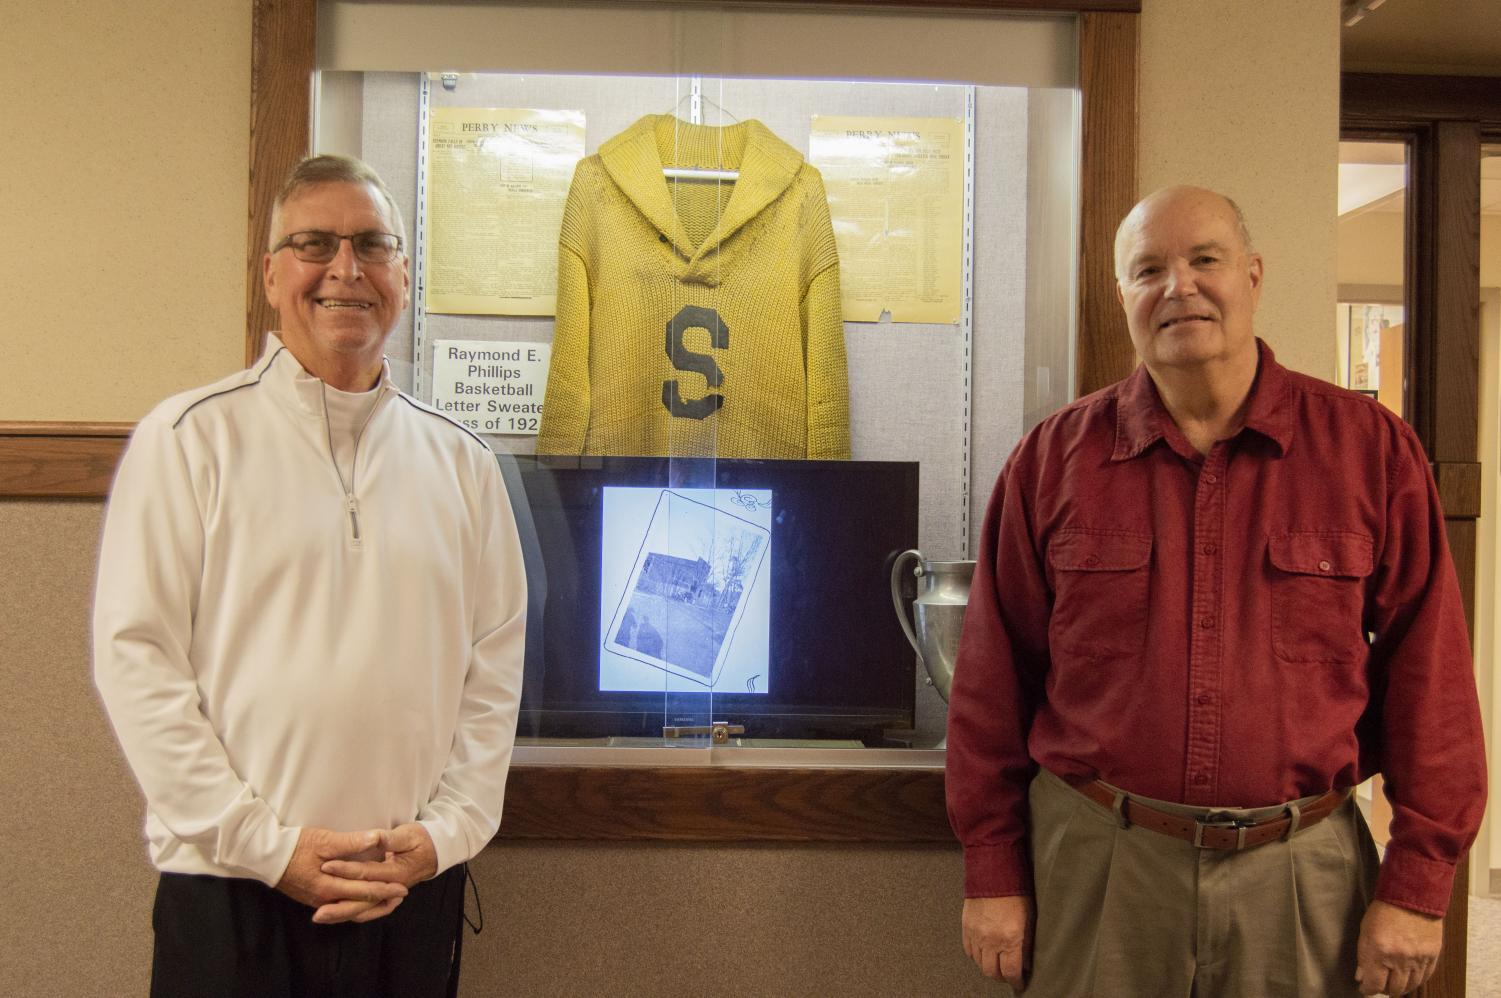 David Ladd (left) and Barry Browning have worked to take care of the SHS Alumni Association Room, which they call a showcase of Southport memorablilia. Both men have collected memorabilia and hope to share their displayed items with the community.